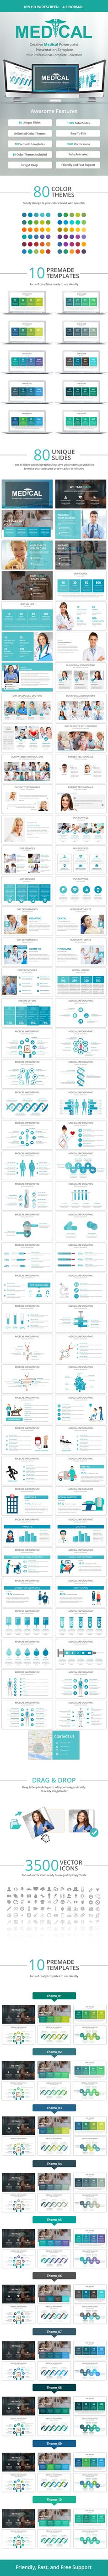 918 best powerpoint templates images on pinterest keynote template buy medical powerpoint presentation template by on graphicriver medical live video medical powerpoint presentation template medical powerpoint template toneelgroepblik Image collections